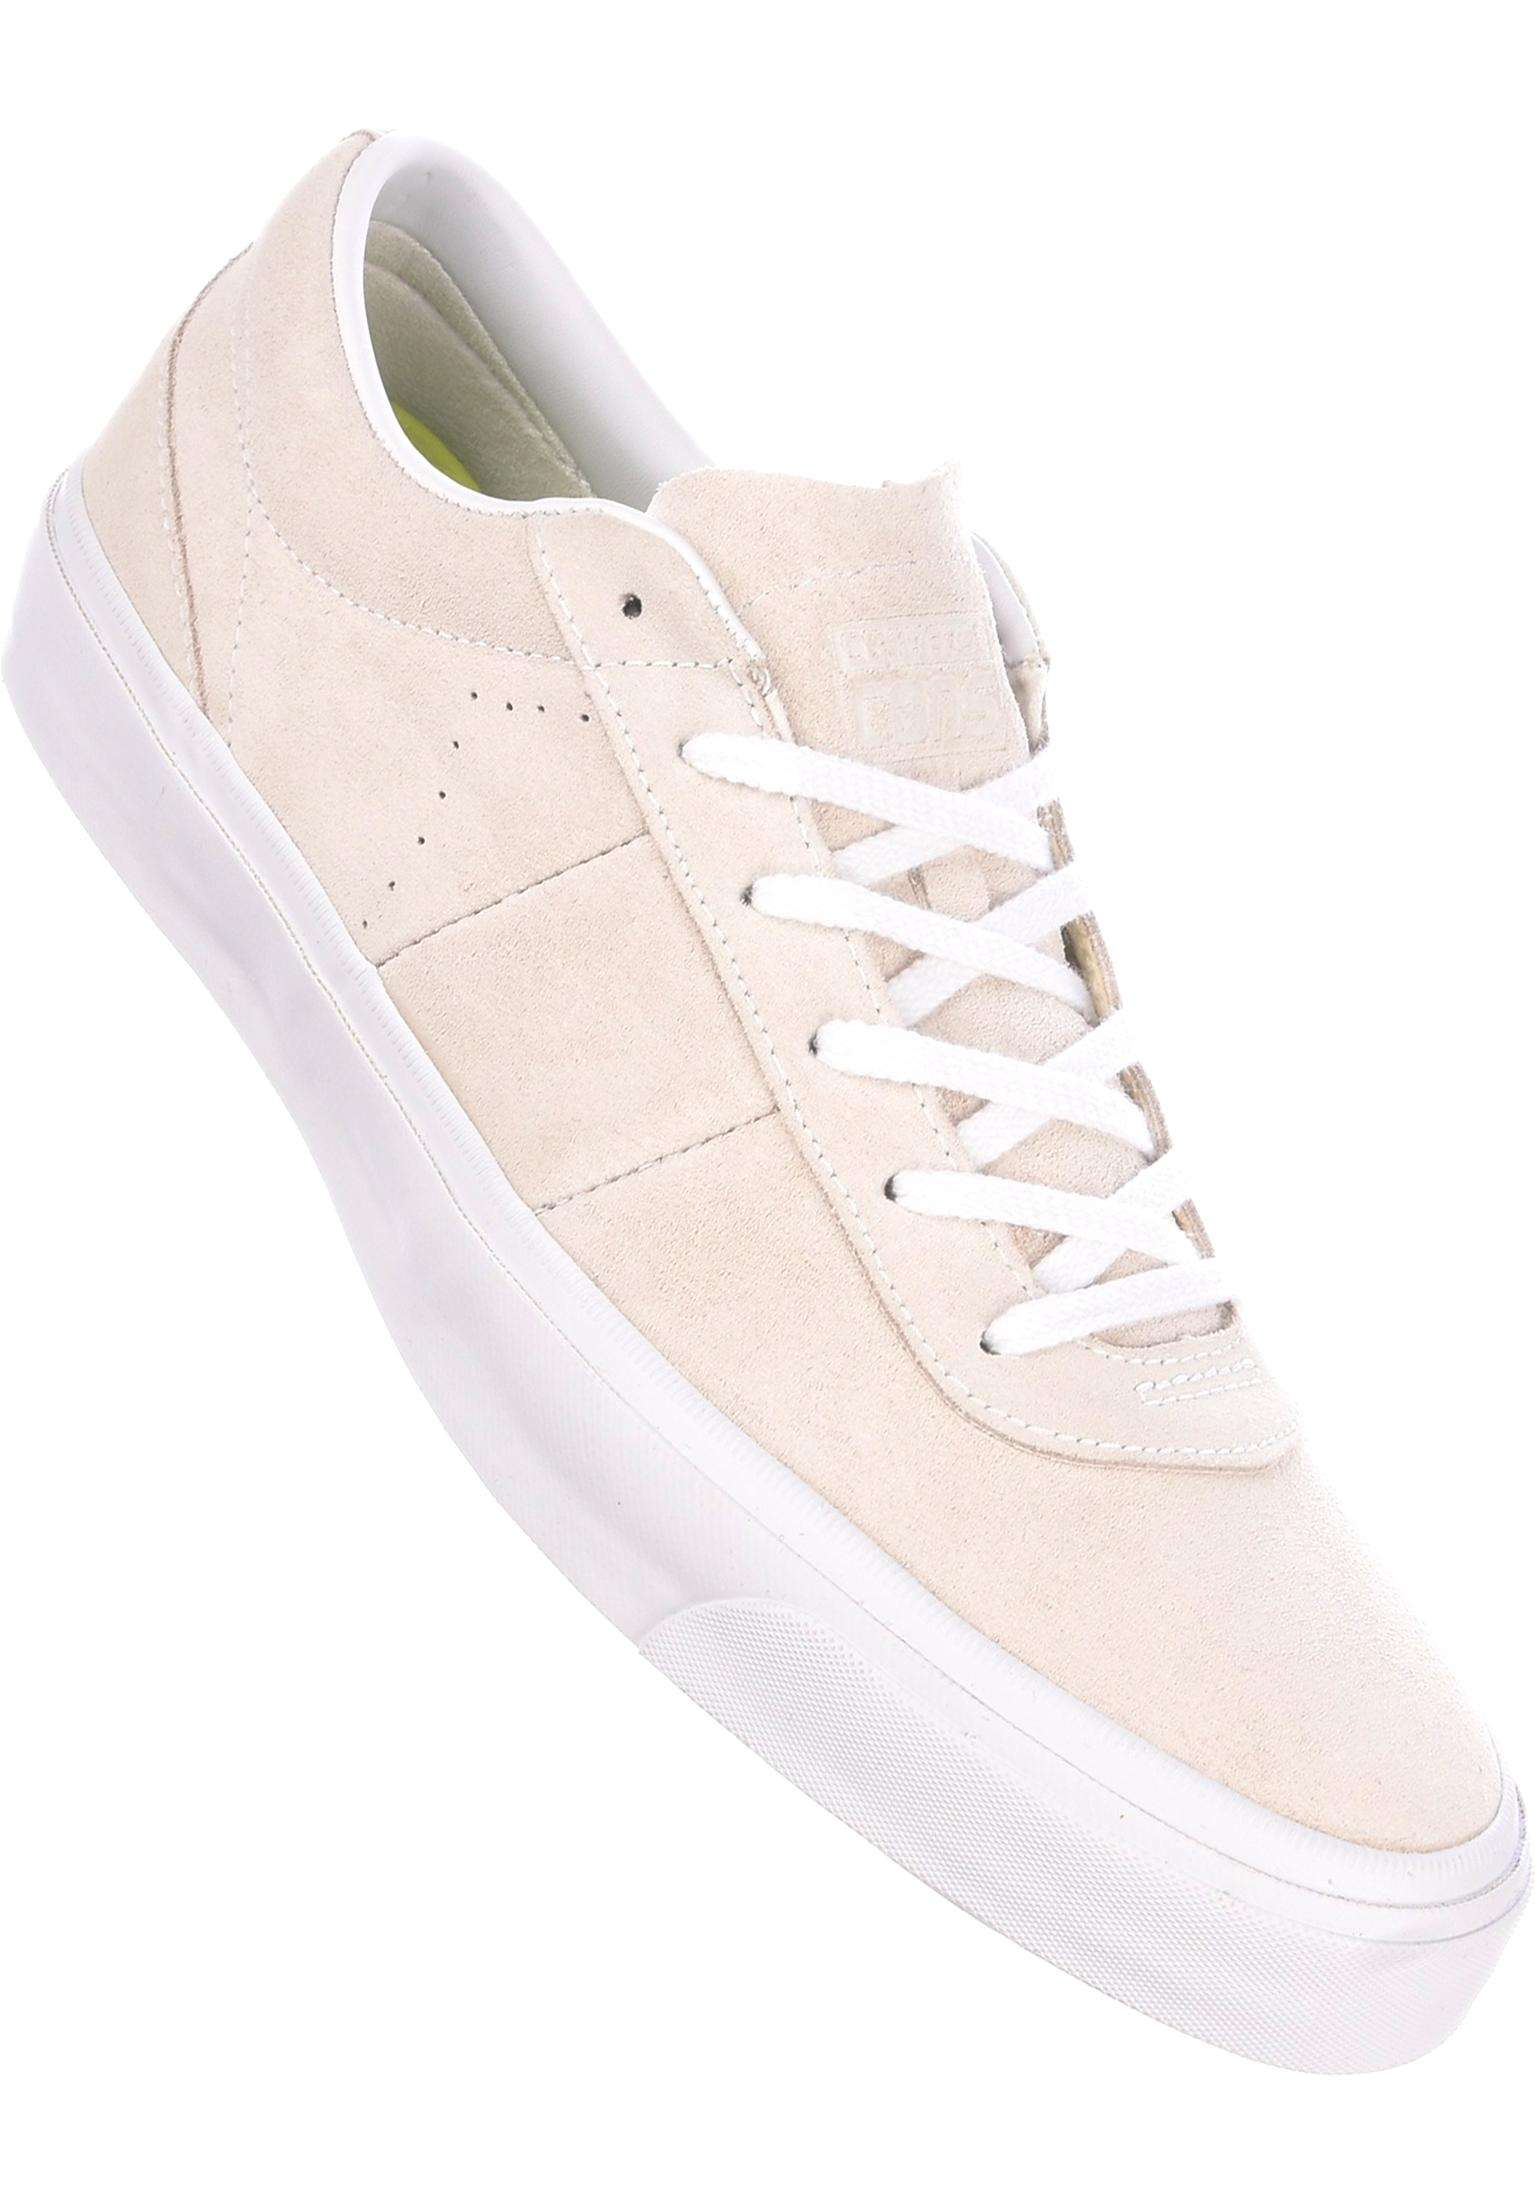 a7ecd44f8ae7 One Star CC Ox Converse CONS All Shoes in egret-white-white for Men ...